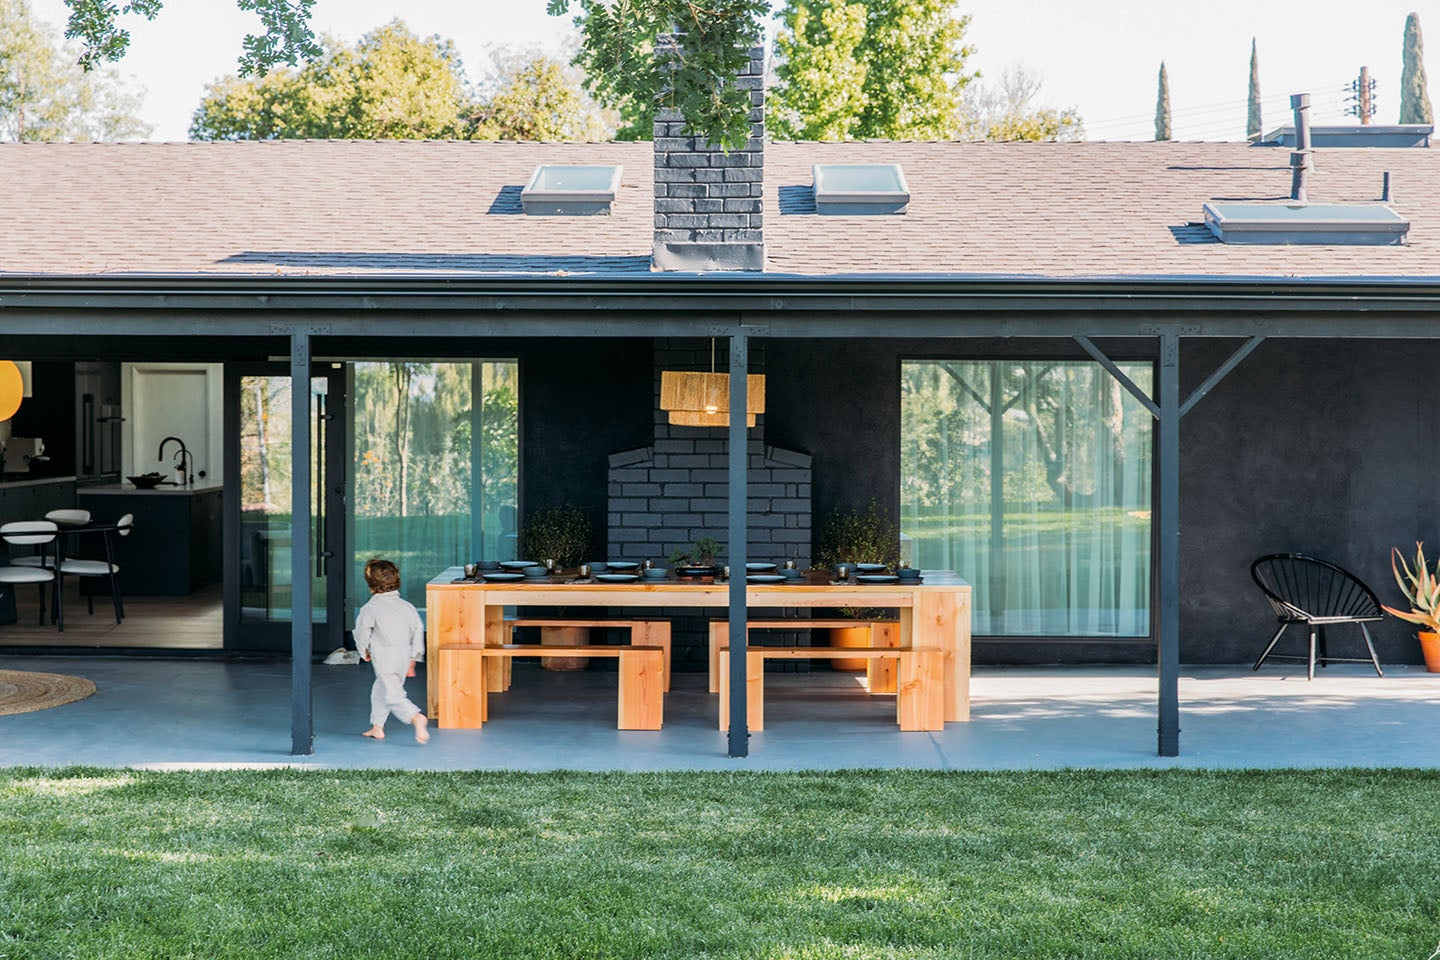 00-feature-mid-century-home-renovation-domino-HomeTour-49